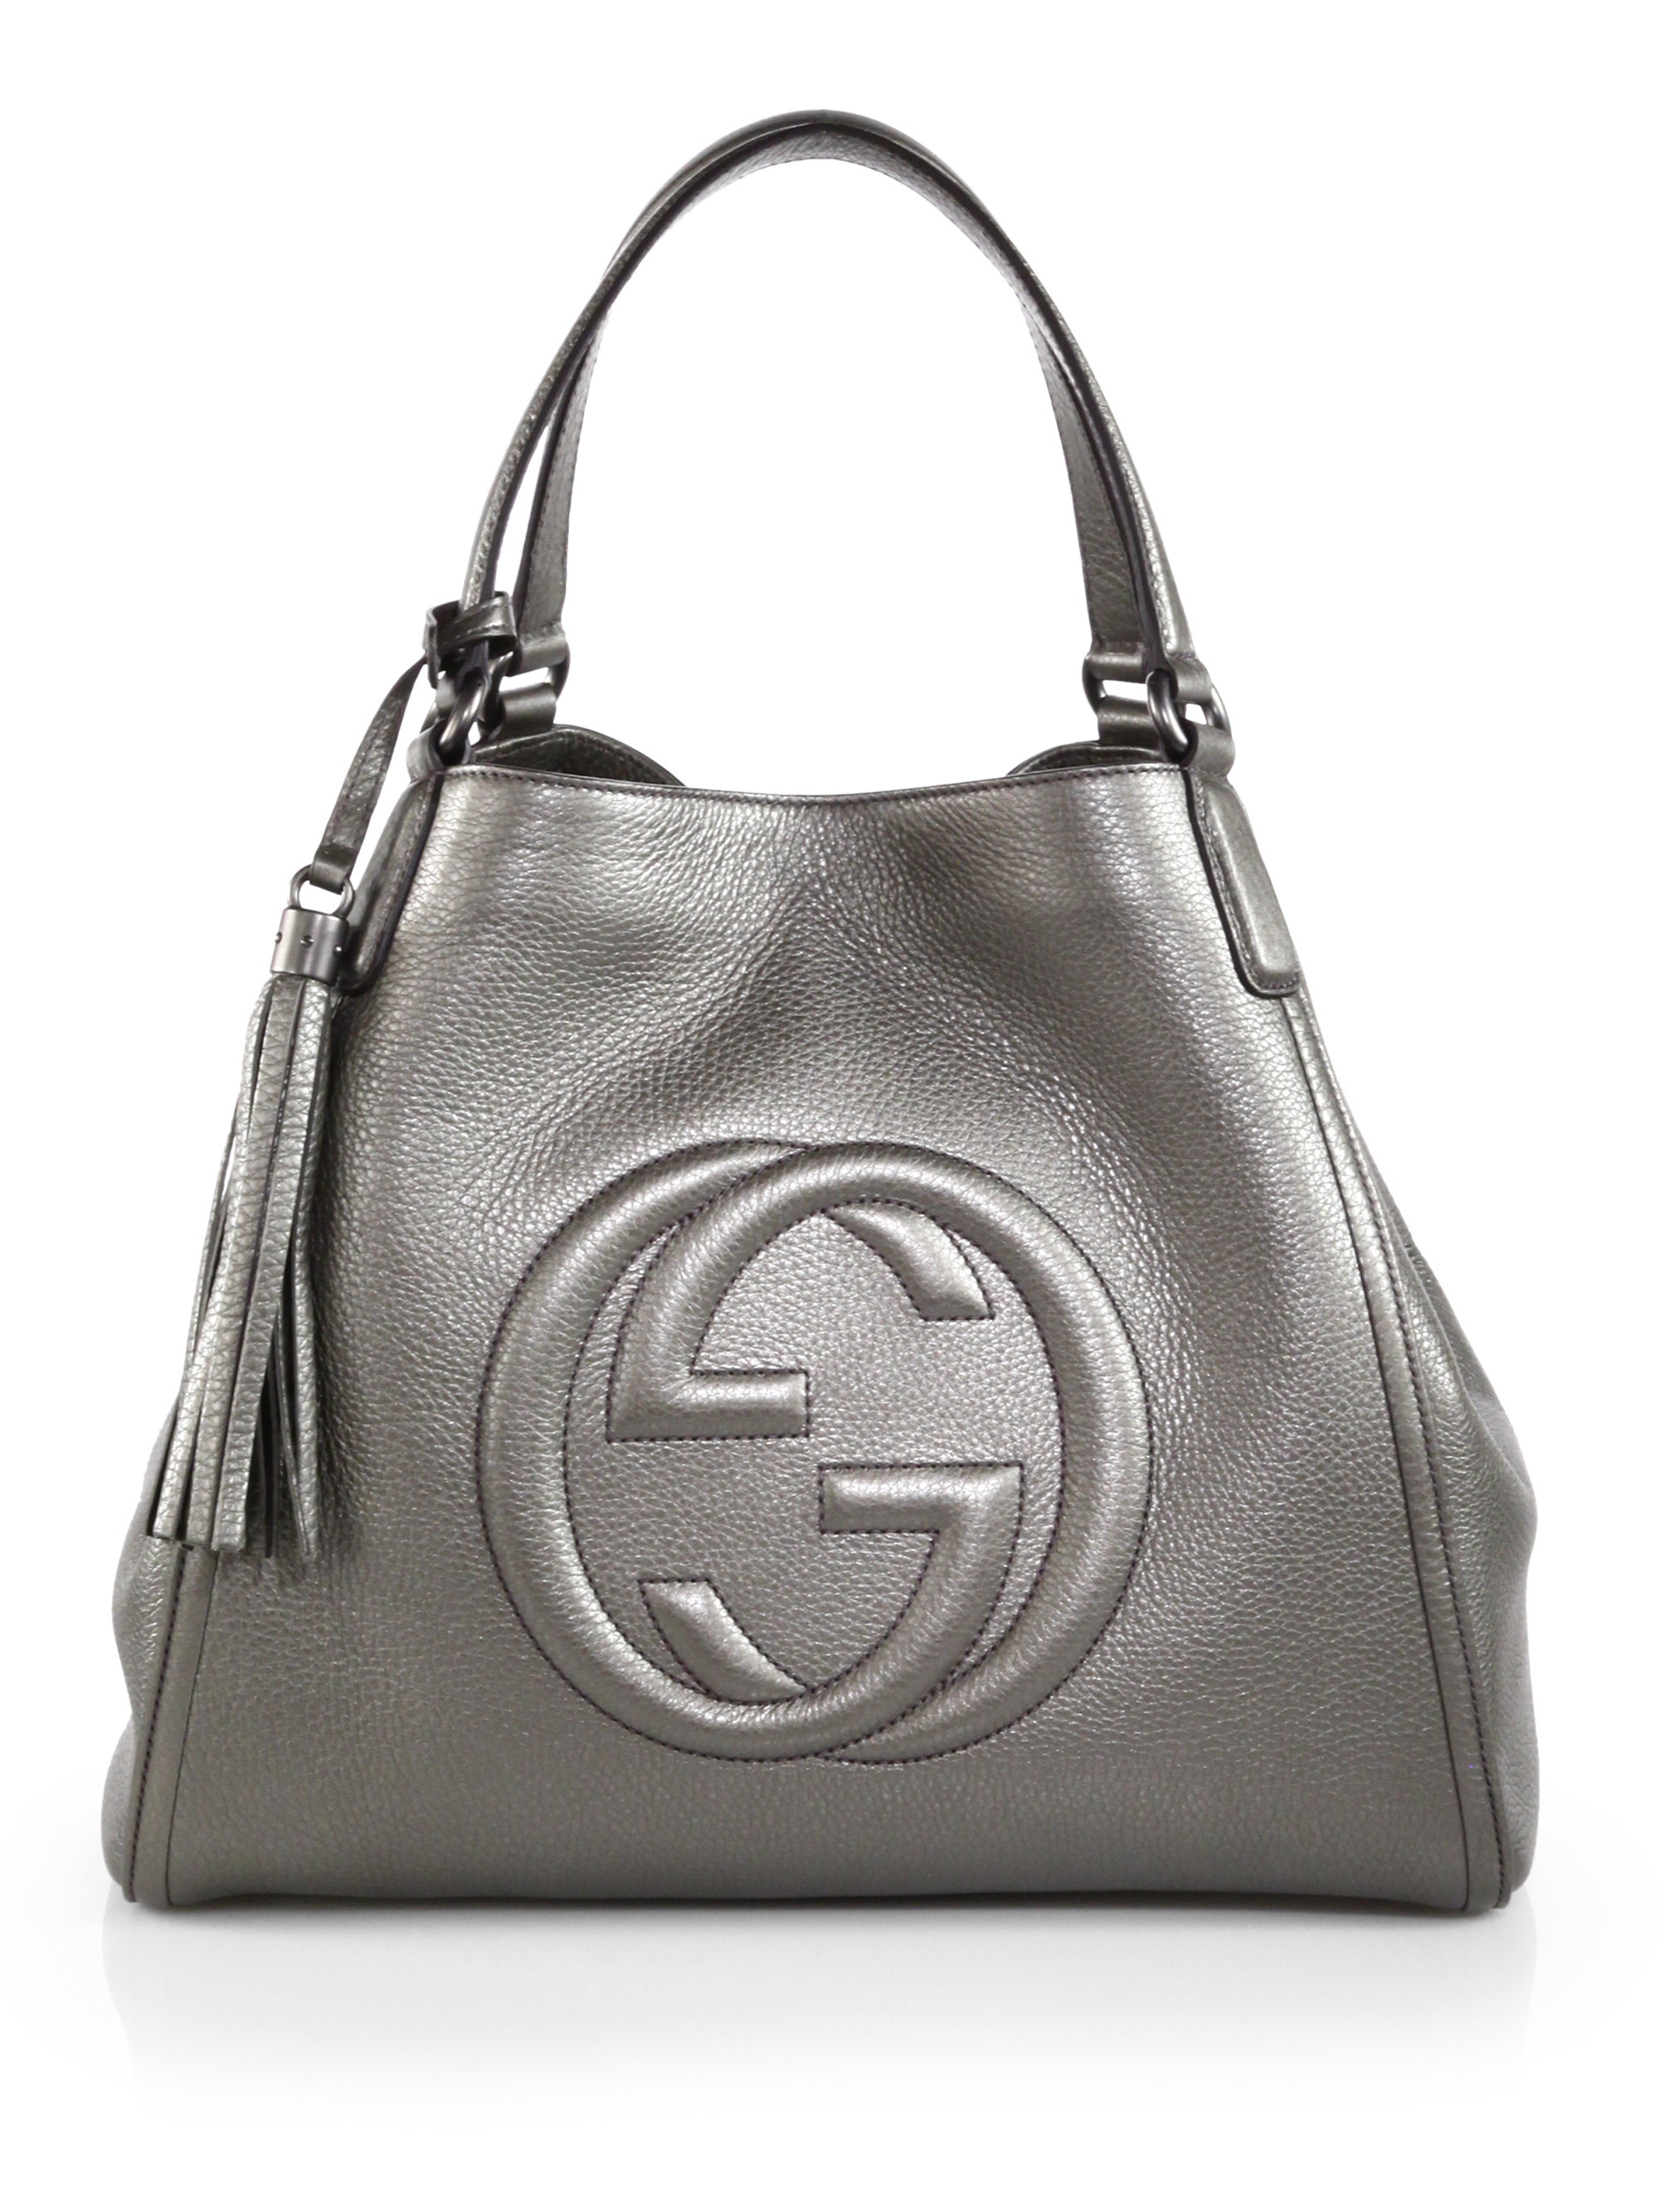 705d57adeb2 Gucci Soho Metallic Leather Shoulder Bag in Metallic - Lyst